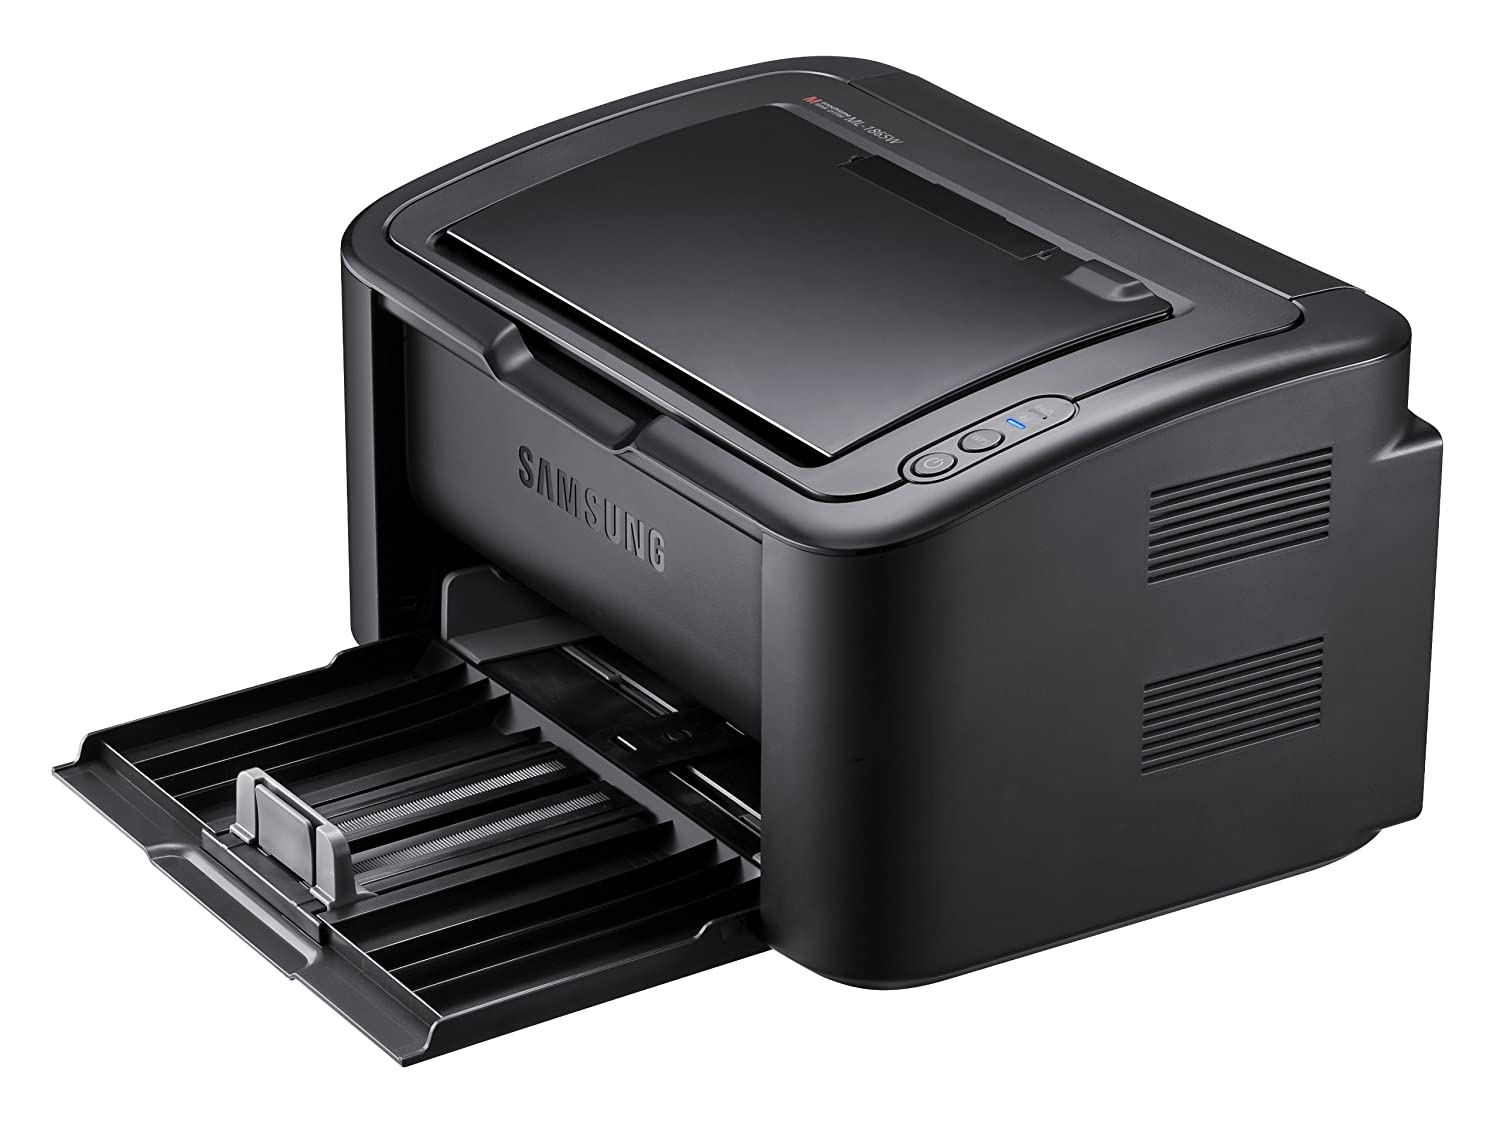 ML1865W PRINTER DRIVER FOR WINDOWS DOWNLOAD